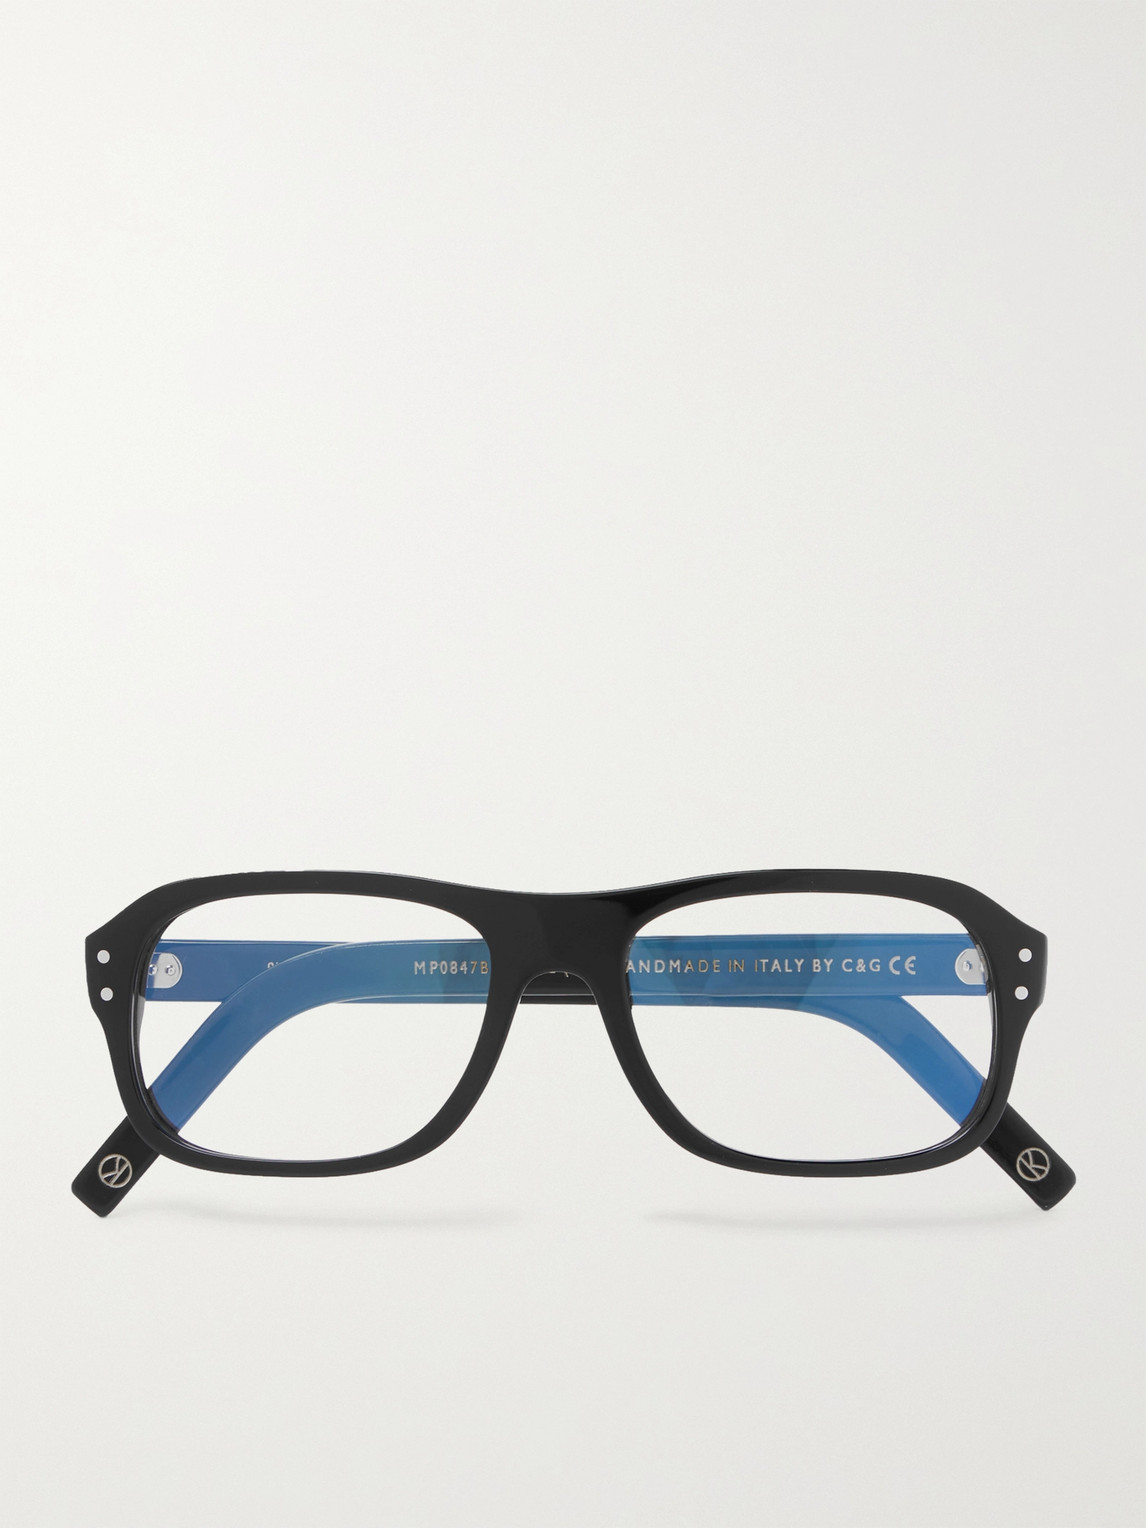 Kingsman Cutler And Gross Eggsy's Square-frame Acetate Optical Glasses In Black